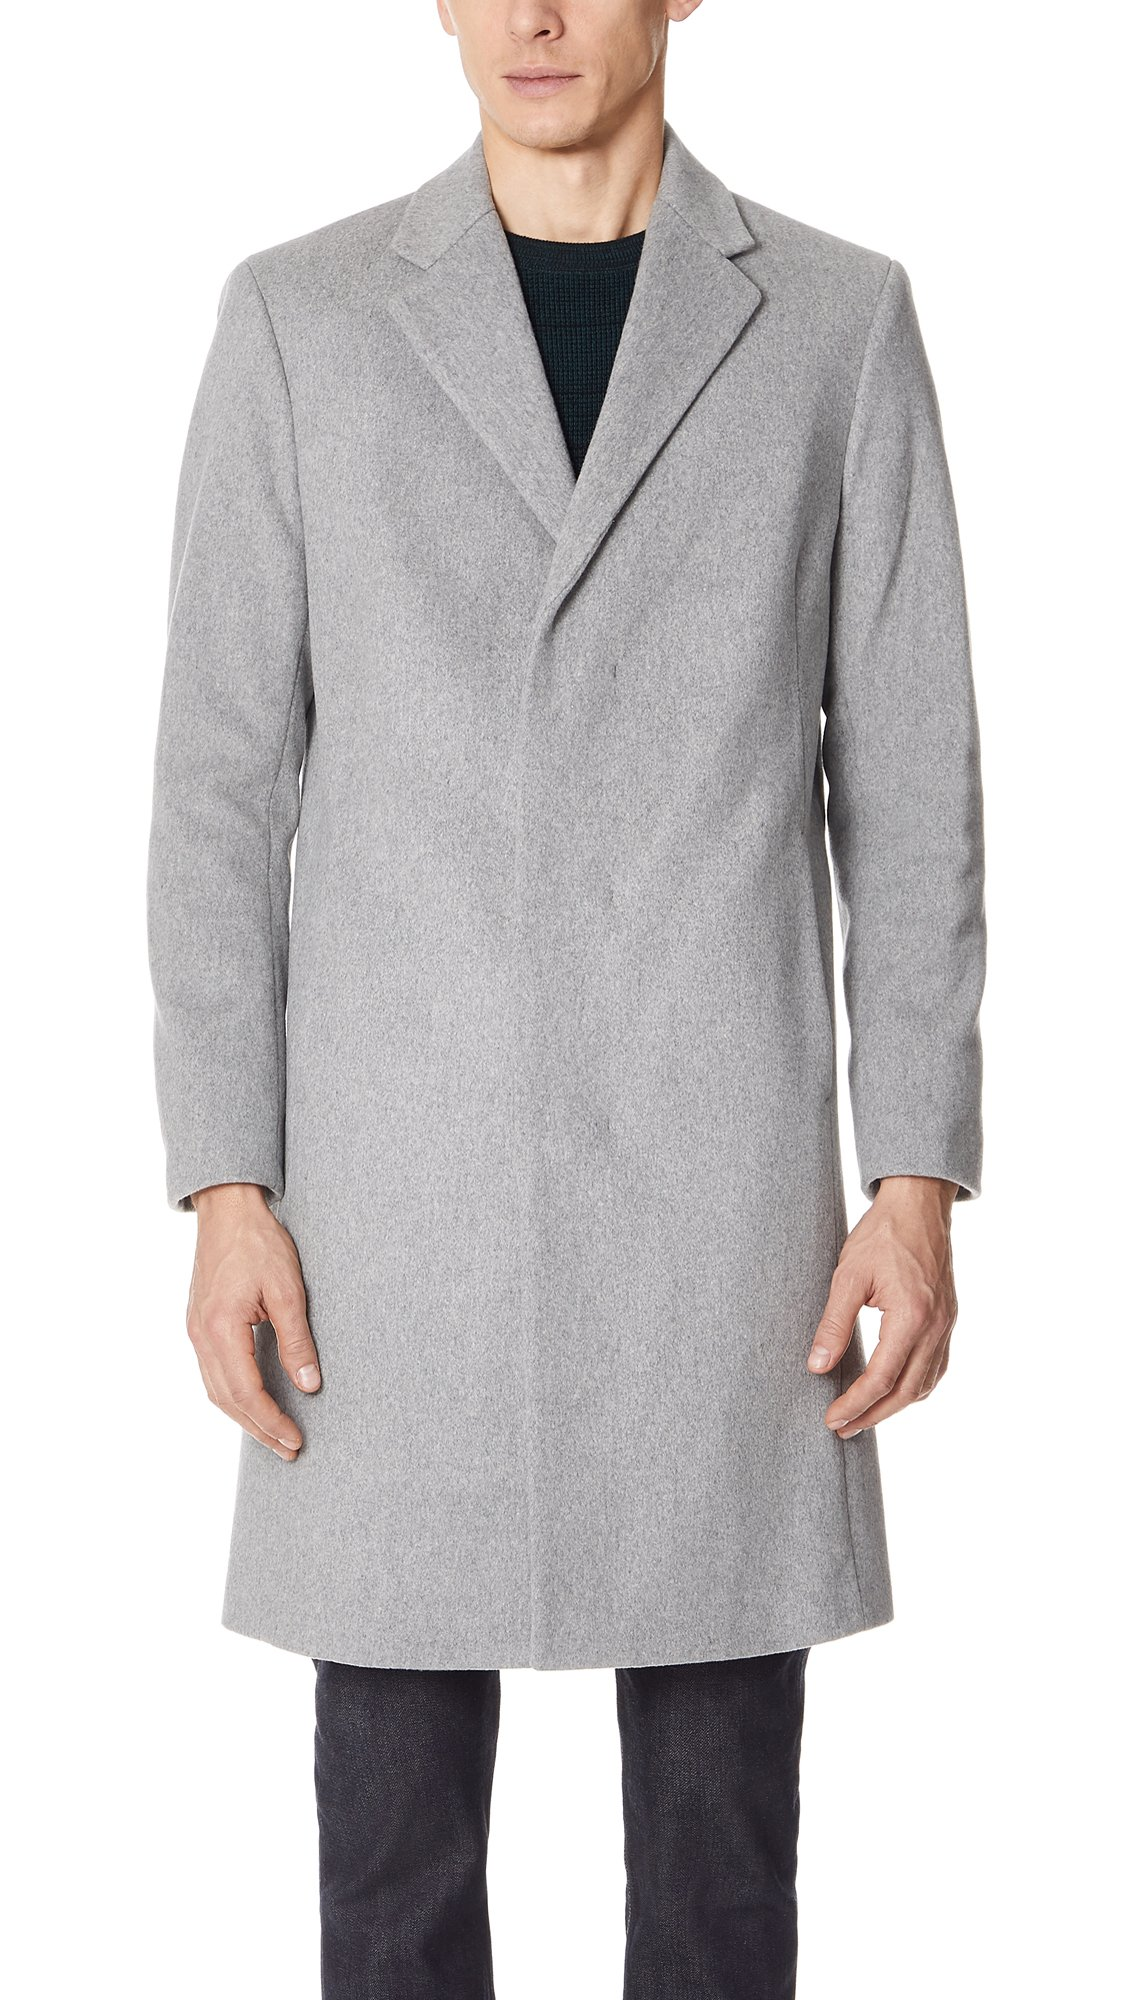 Theory Men's Bower Topcoat, Light Grey Heather, Medium